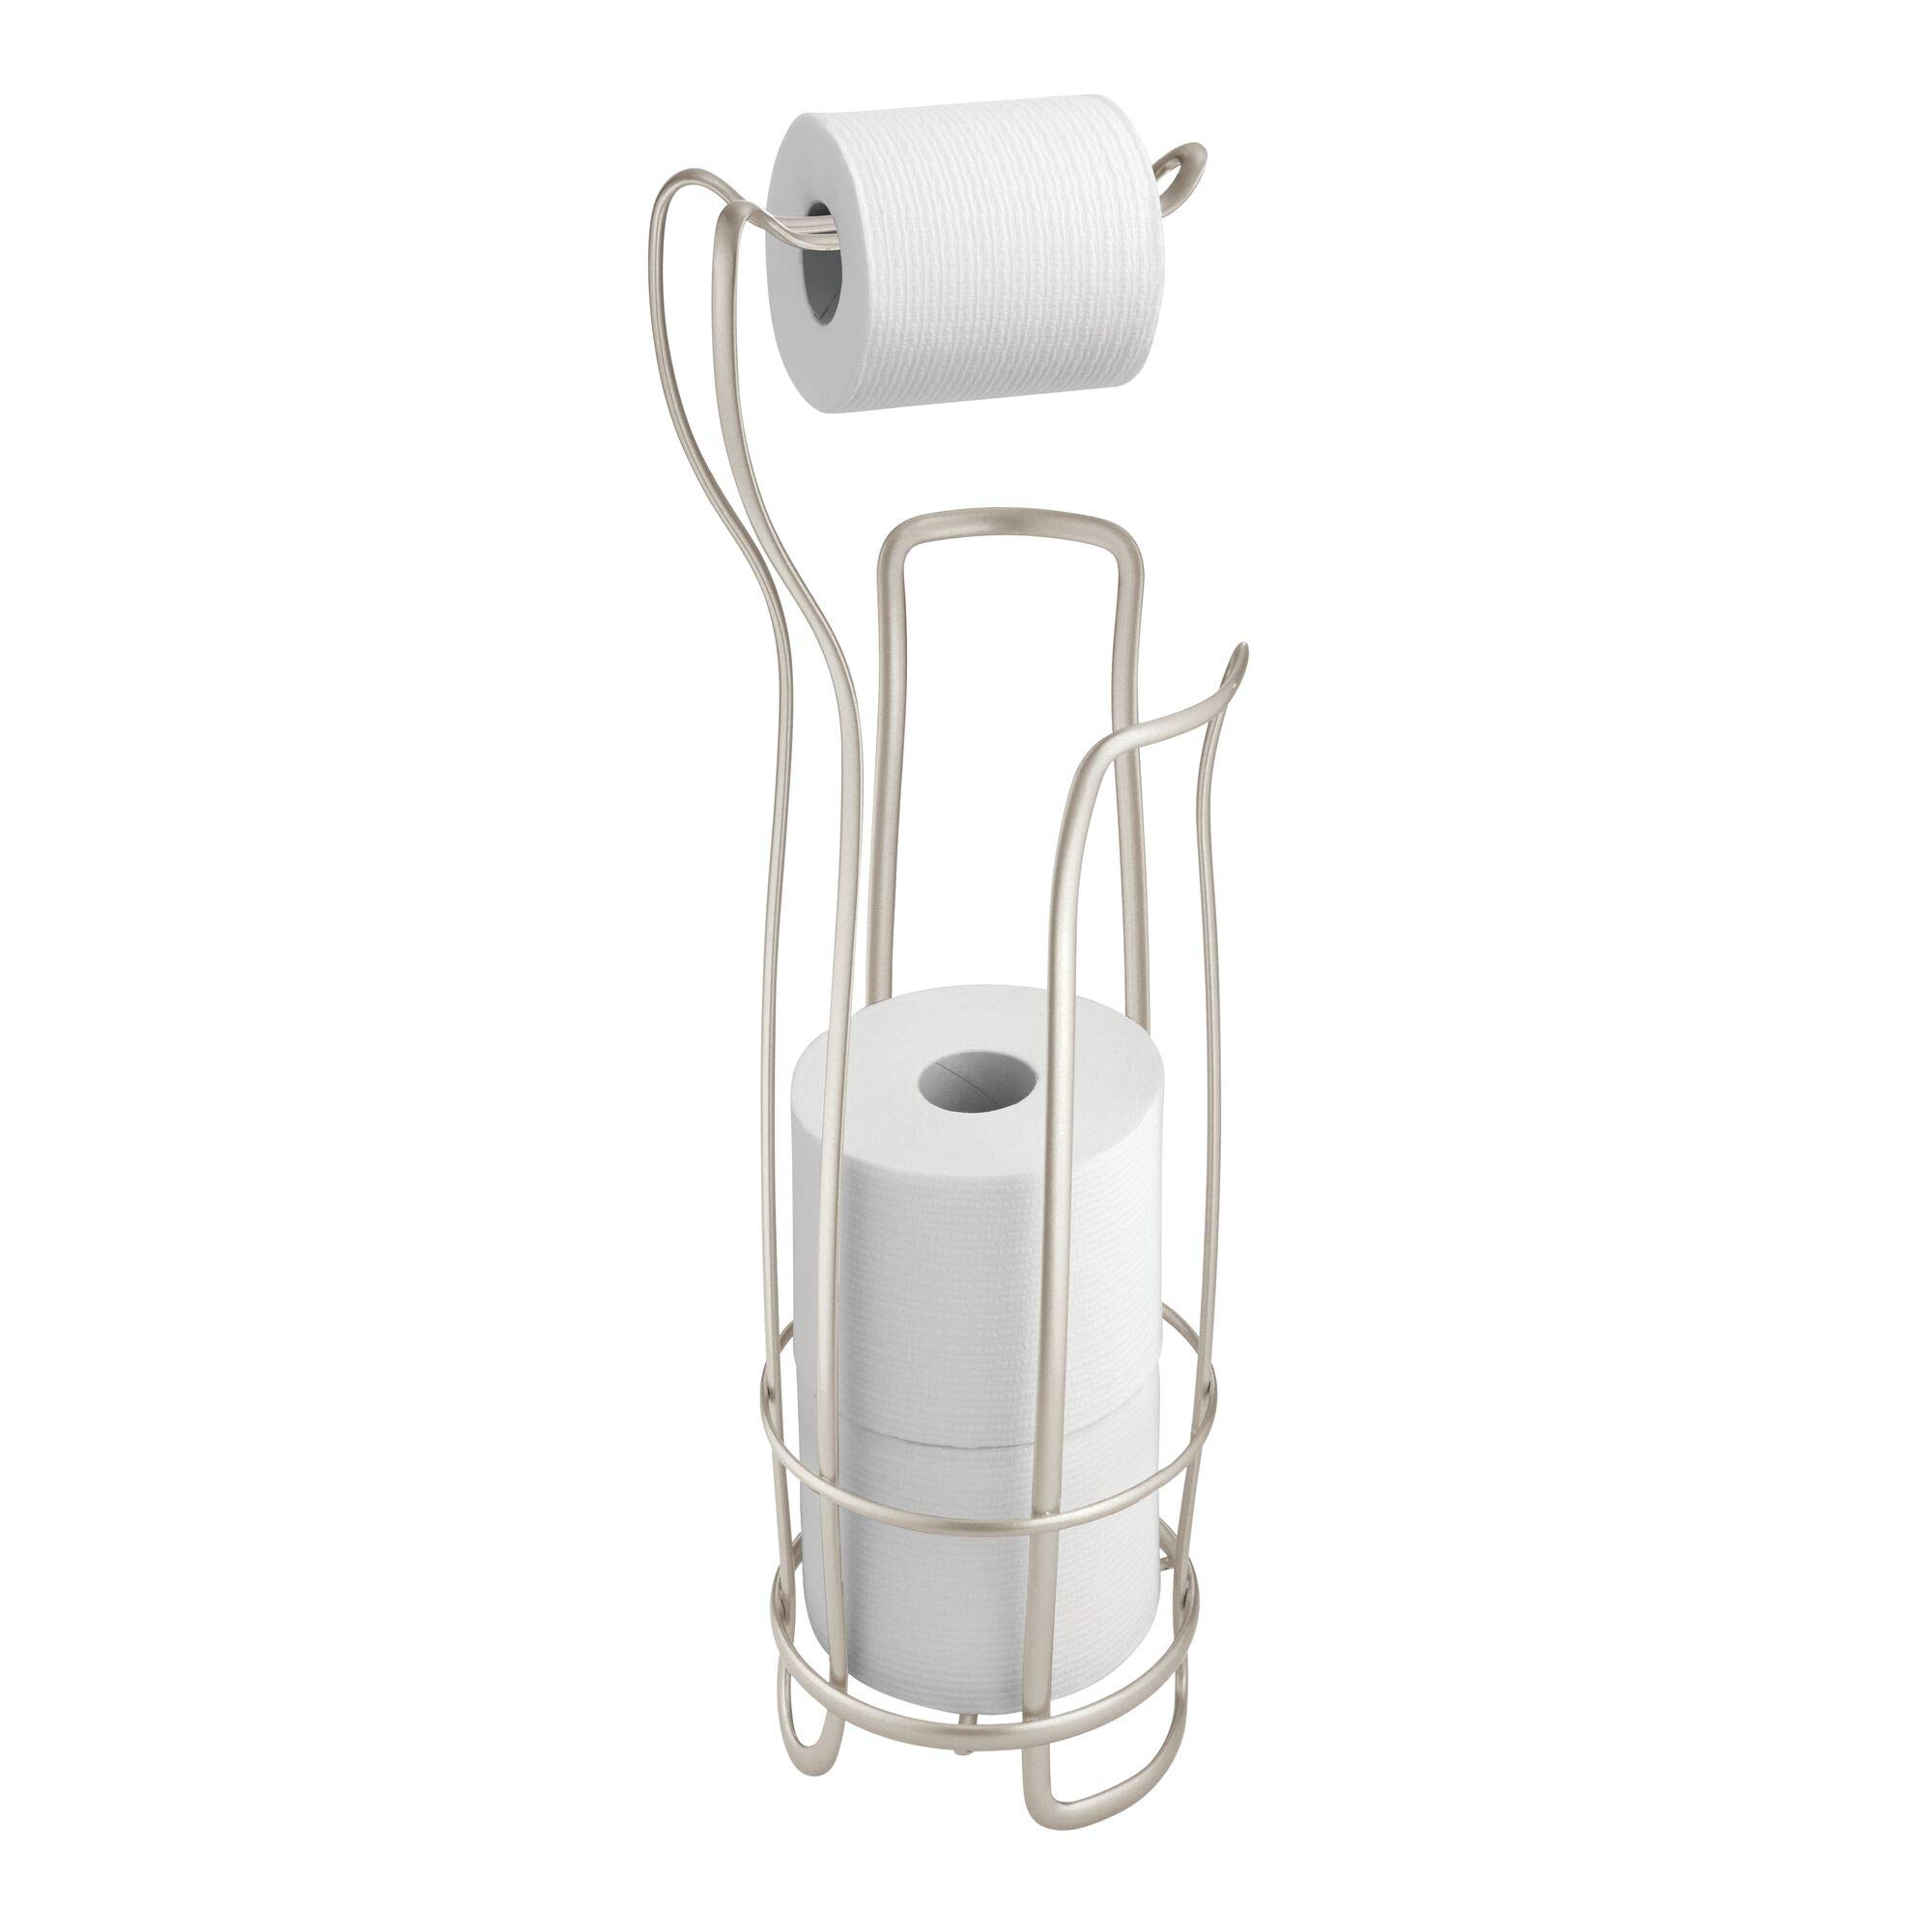 iDesign Axis Metal Free Standing Toilet Paper Tissue Holder, Roll Reserve Canister for Kid's, Guest, Master, Office Bathroom, 8'' x 6.5'' x 24.5'', Satin Silver